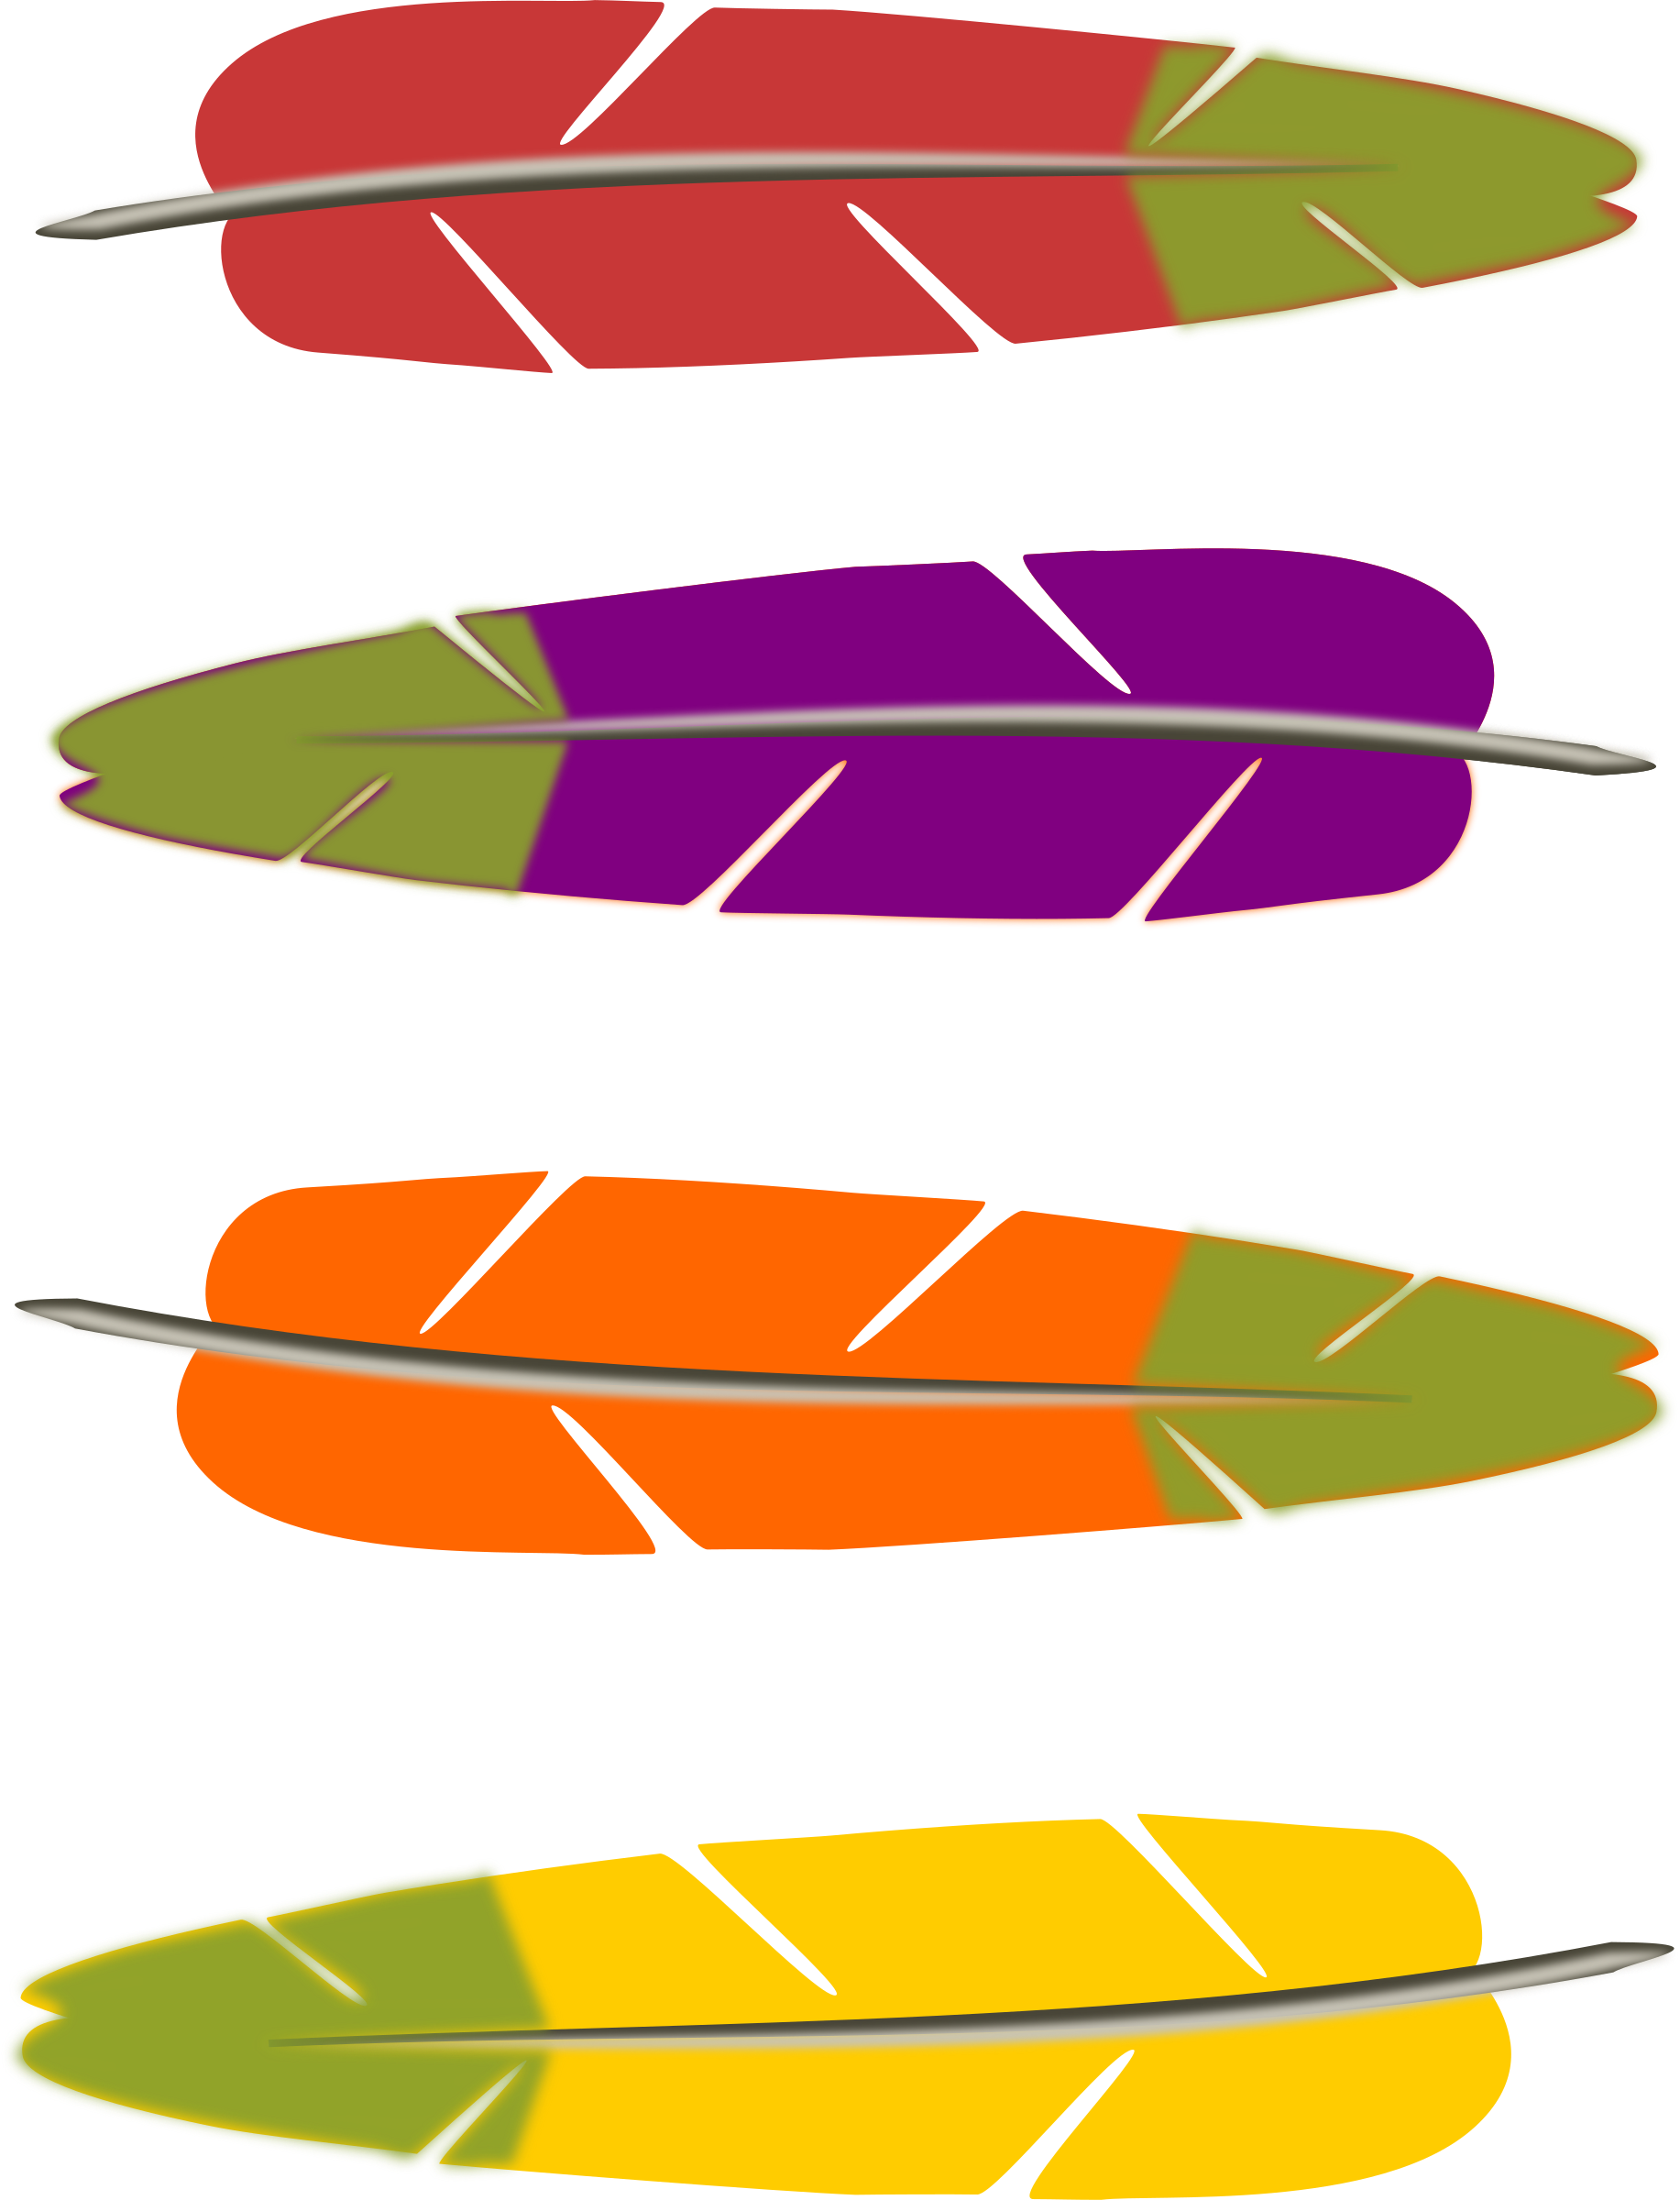 Fork clipart colored. Feathers cilpart